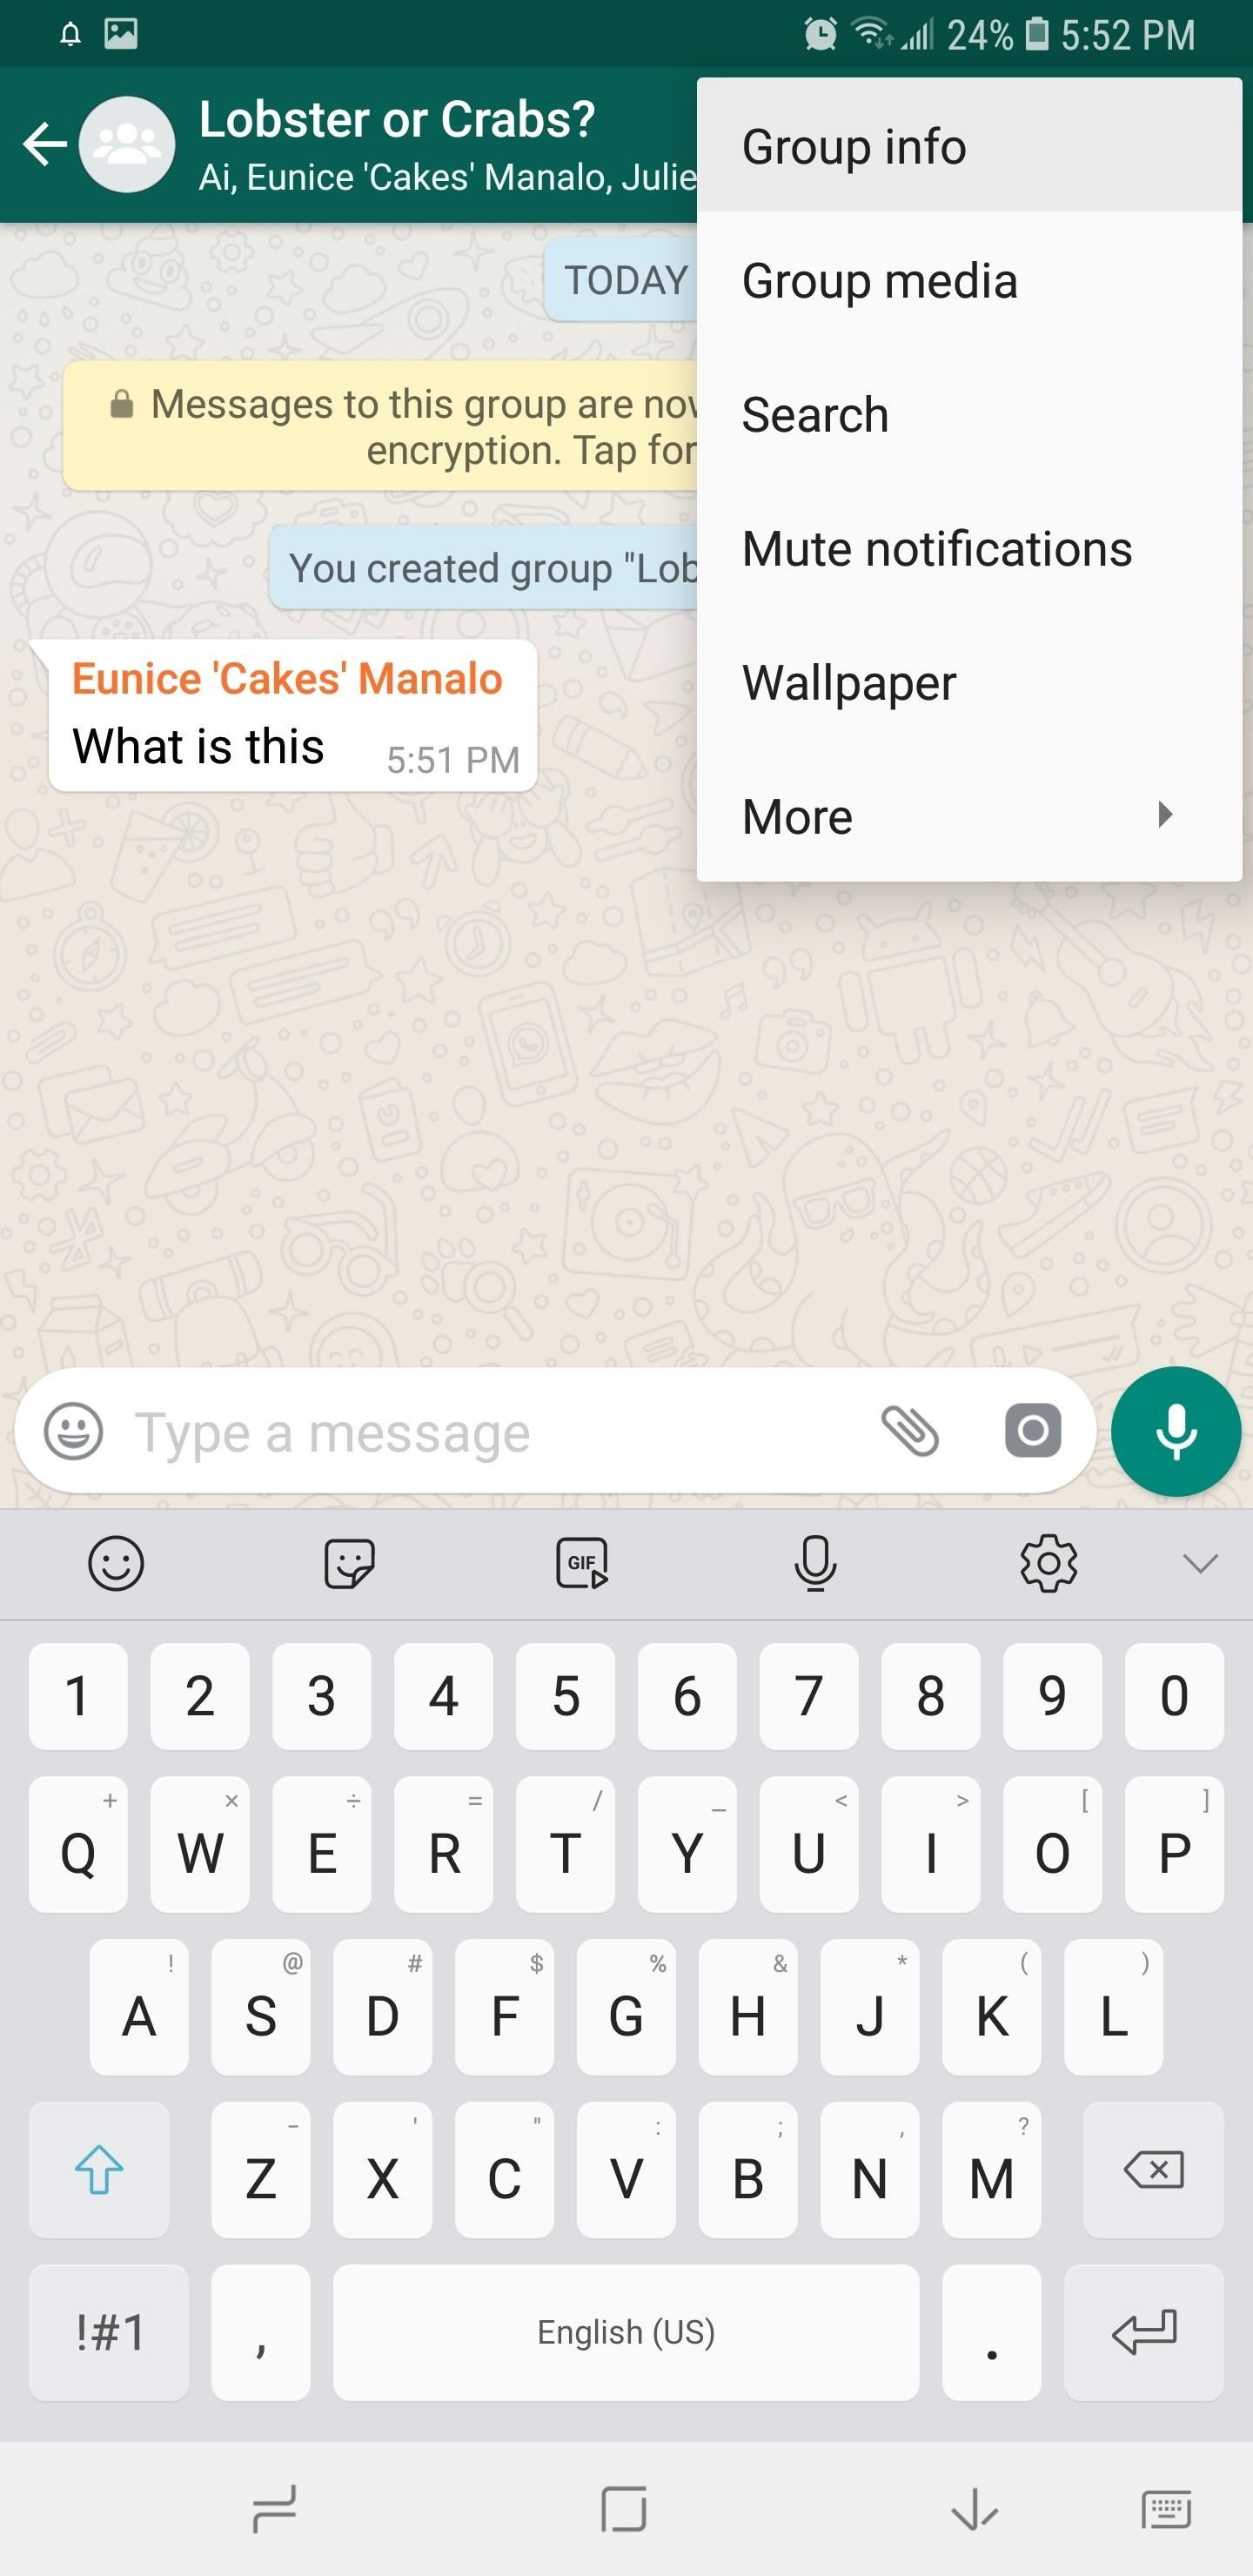 18 Hidden WhatsApp Features Everyone Should Know About